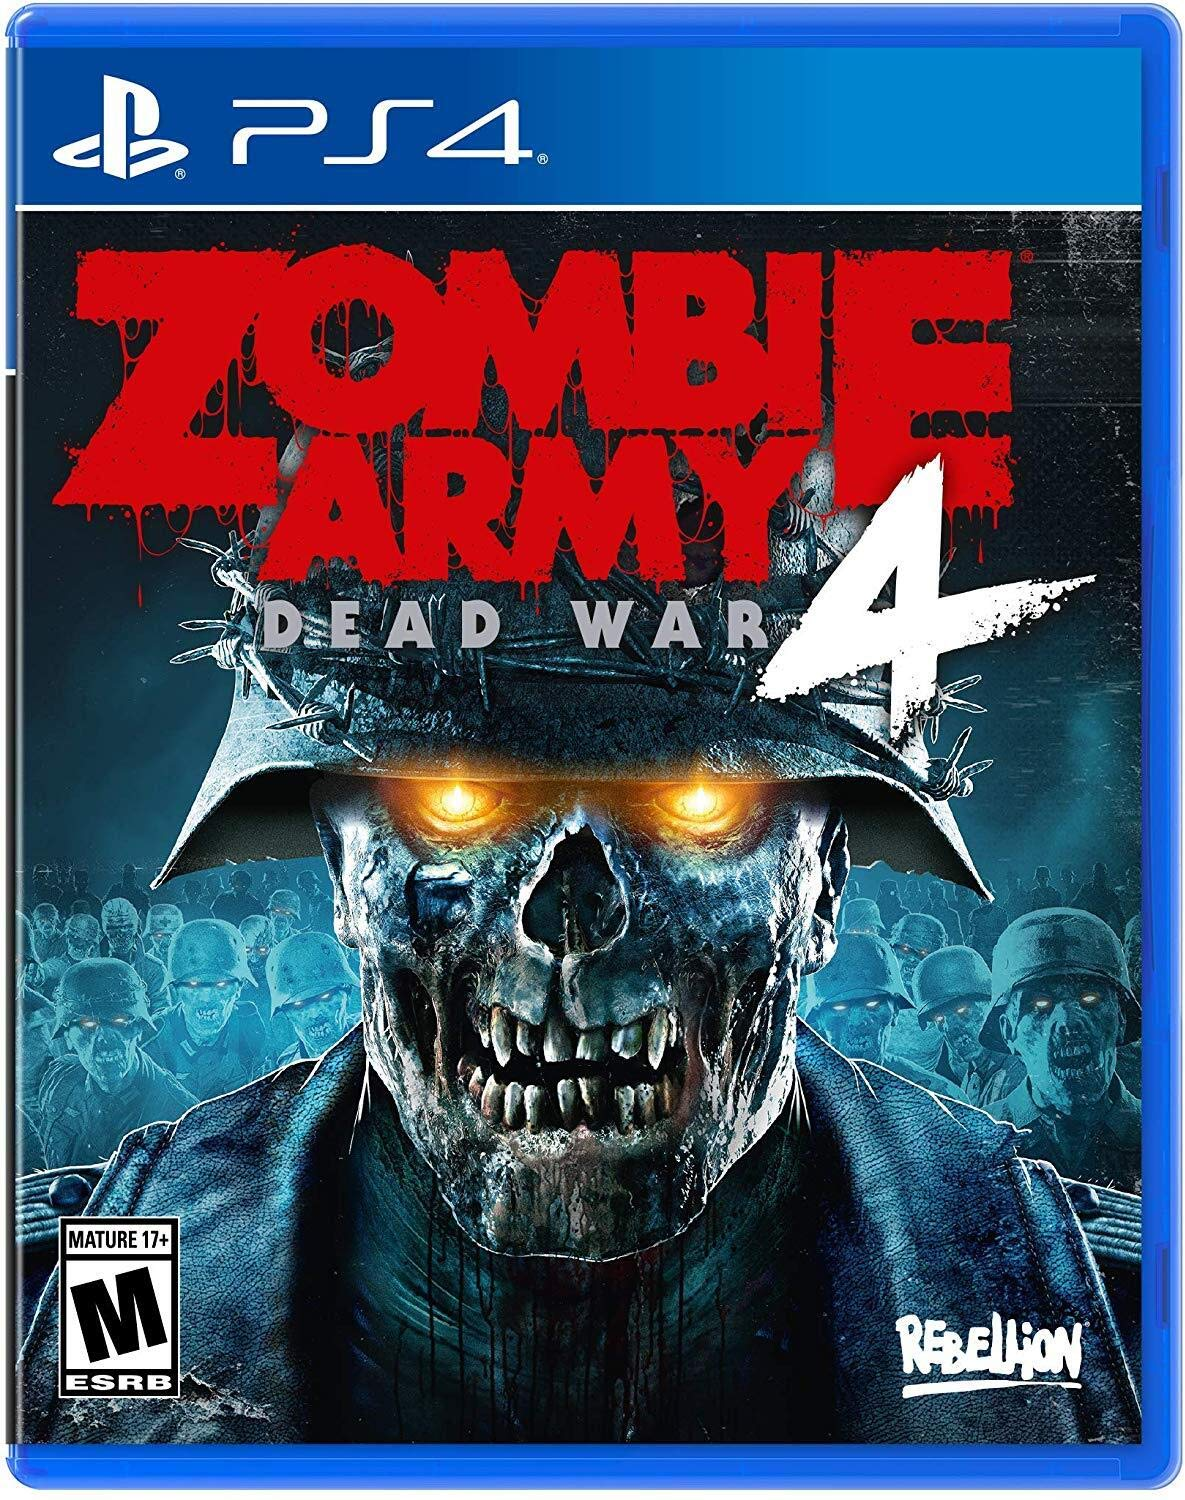 PS4 Zombie Army 4 Dead War (PlayStation 4)